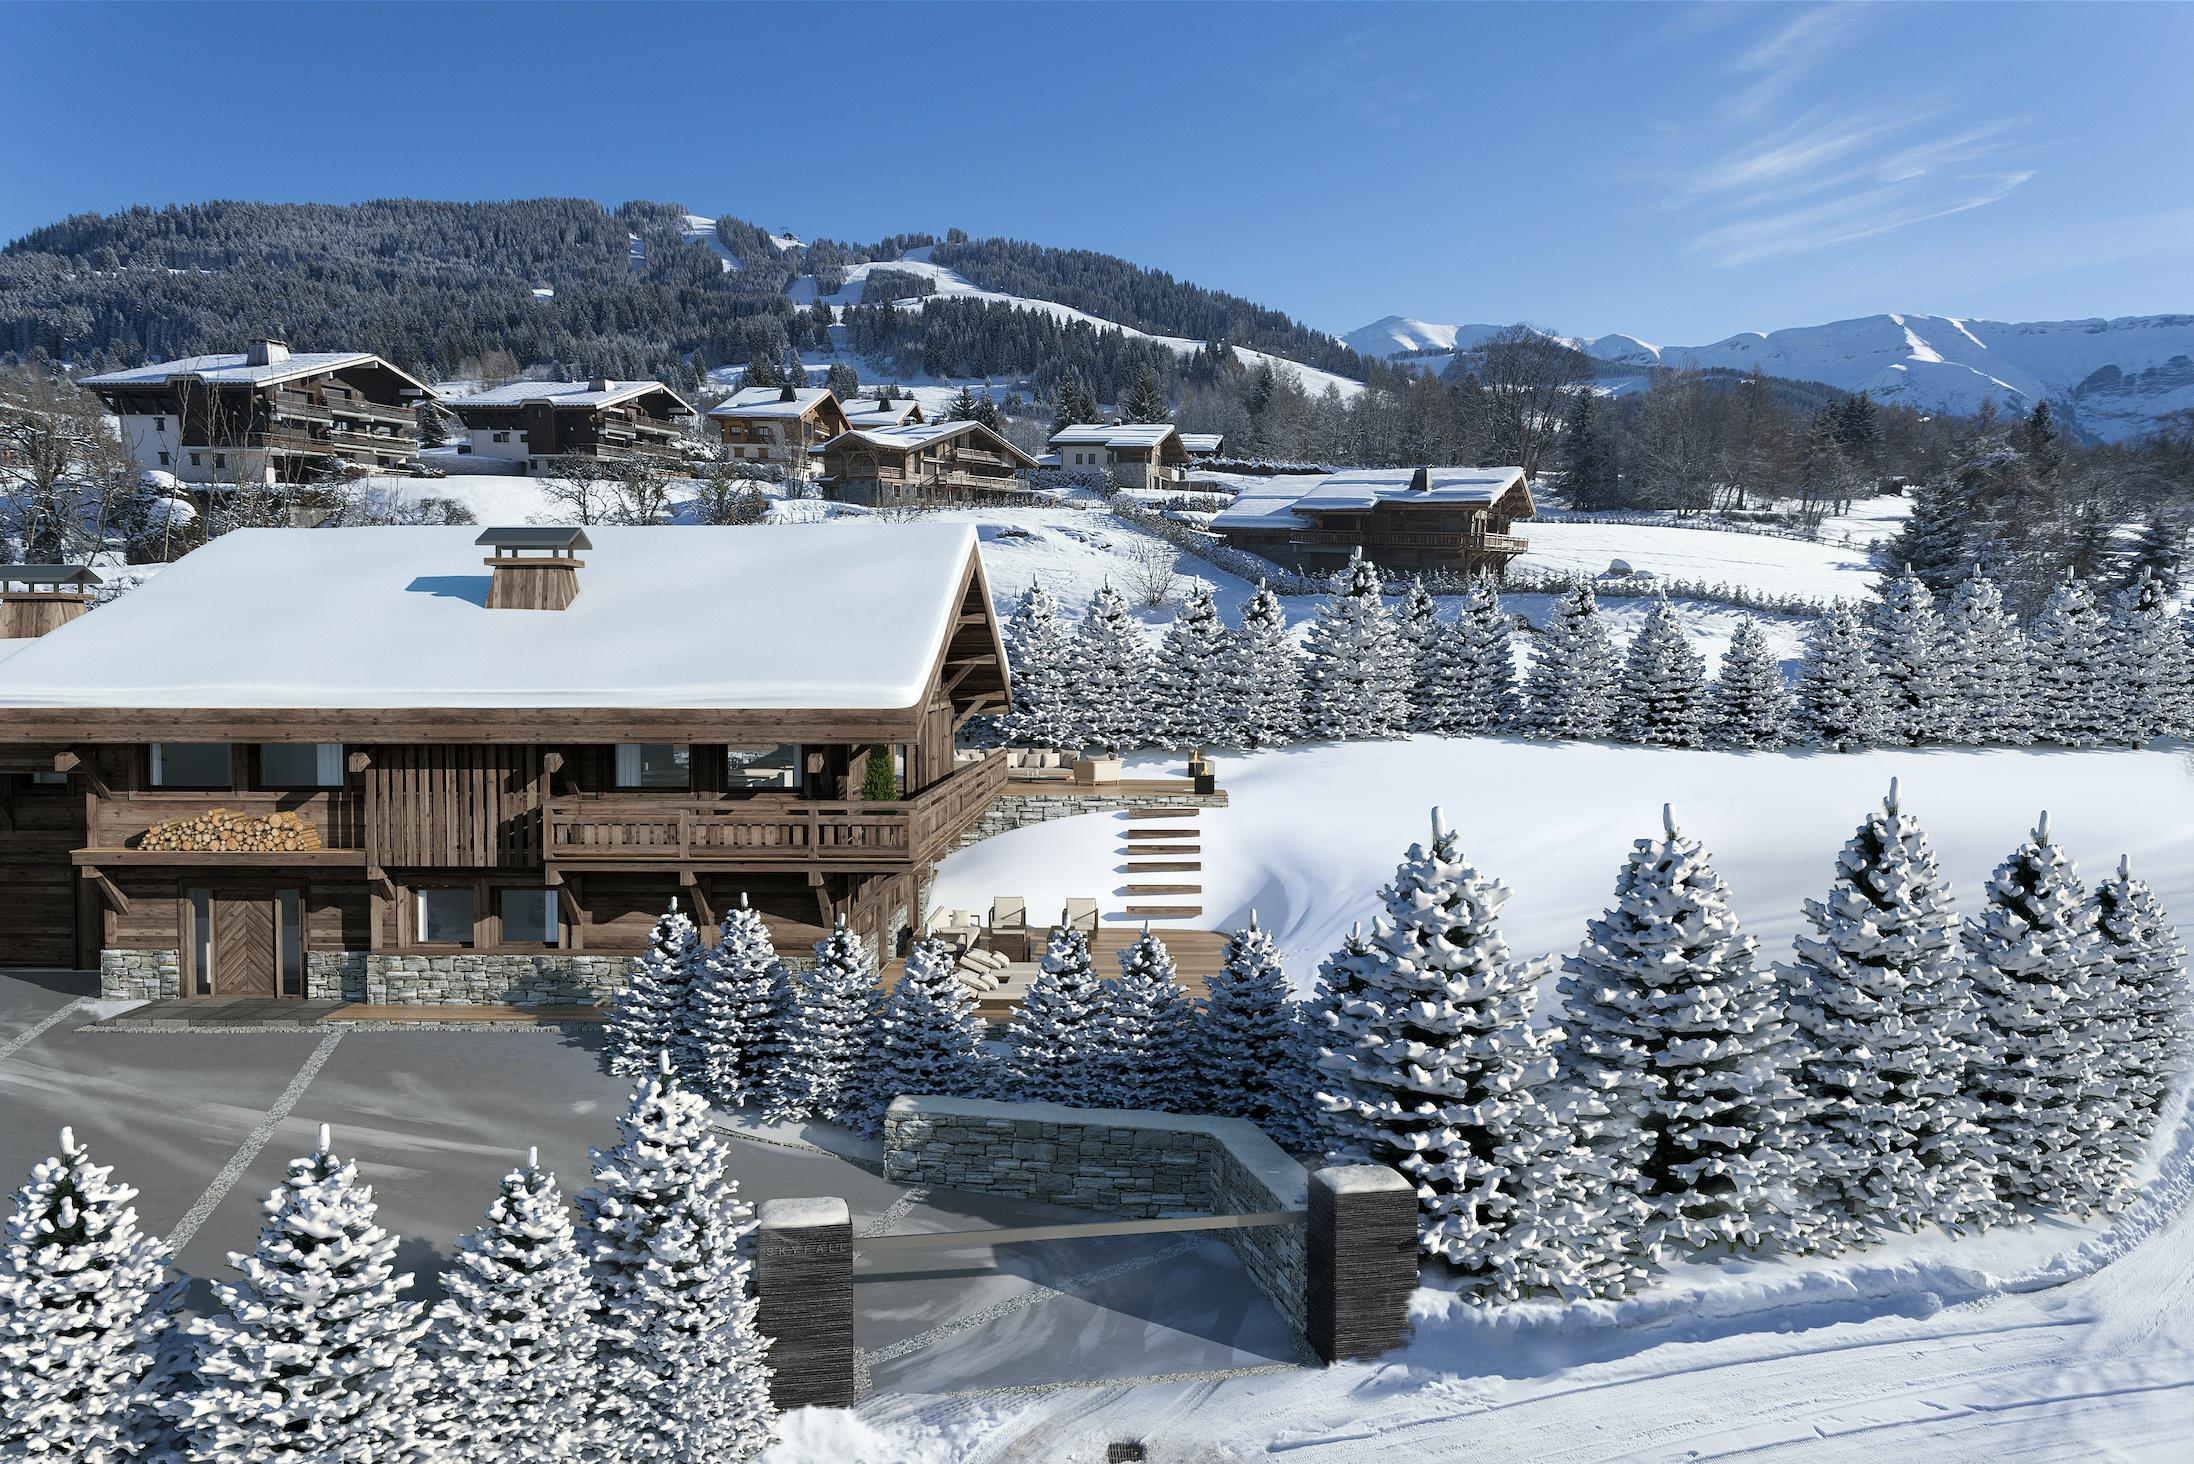 New Luxurious Chalet Development